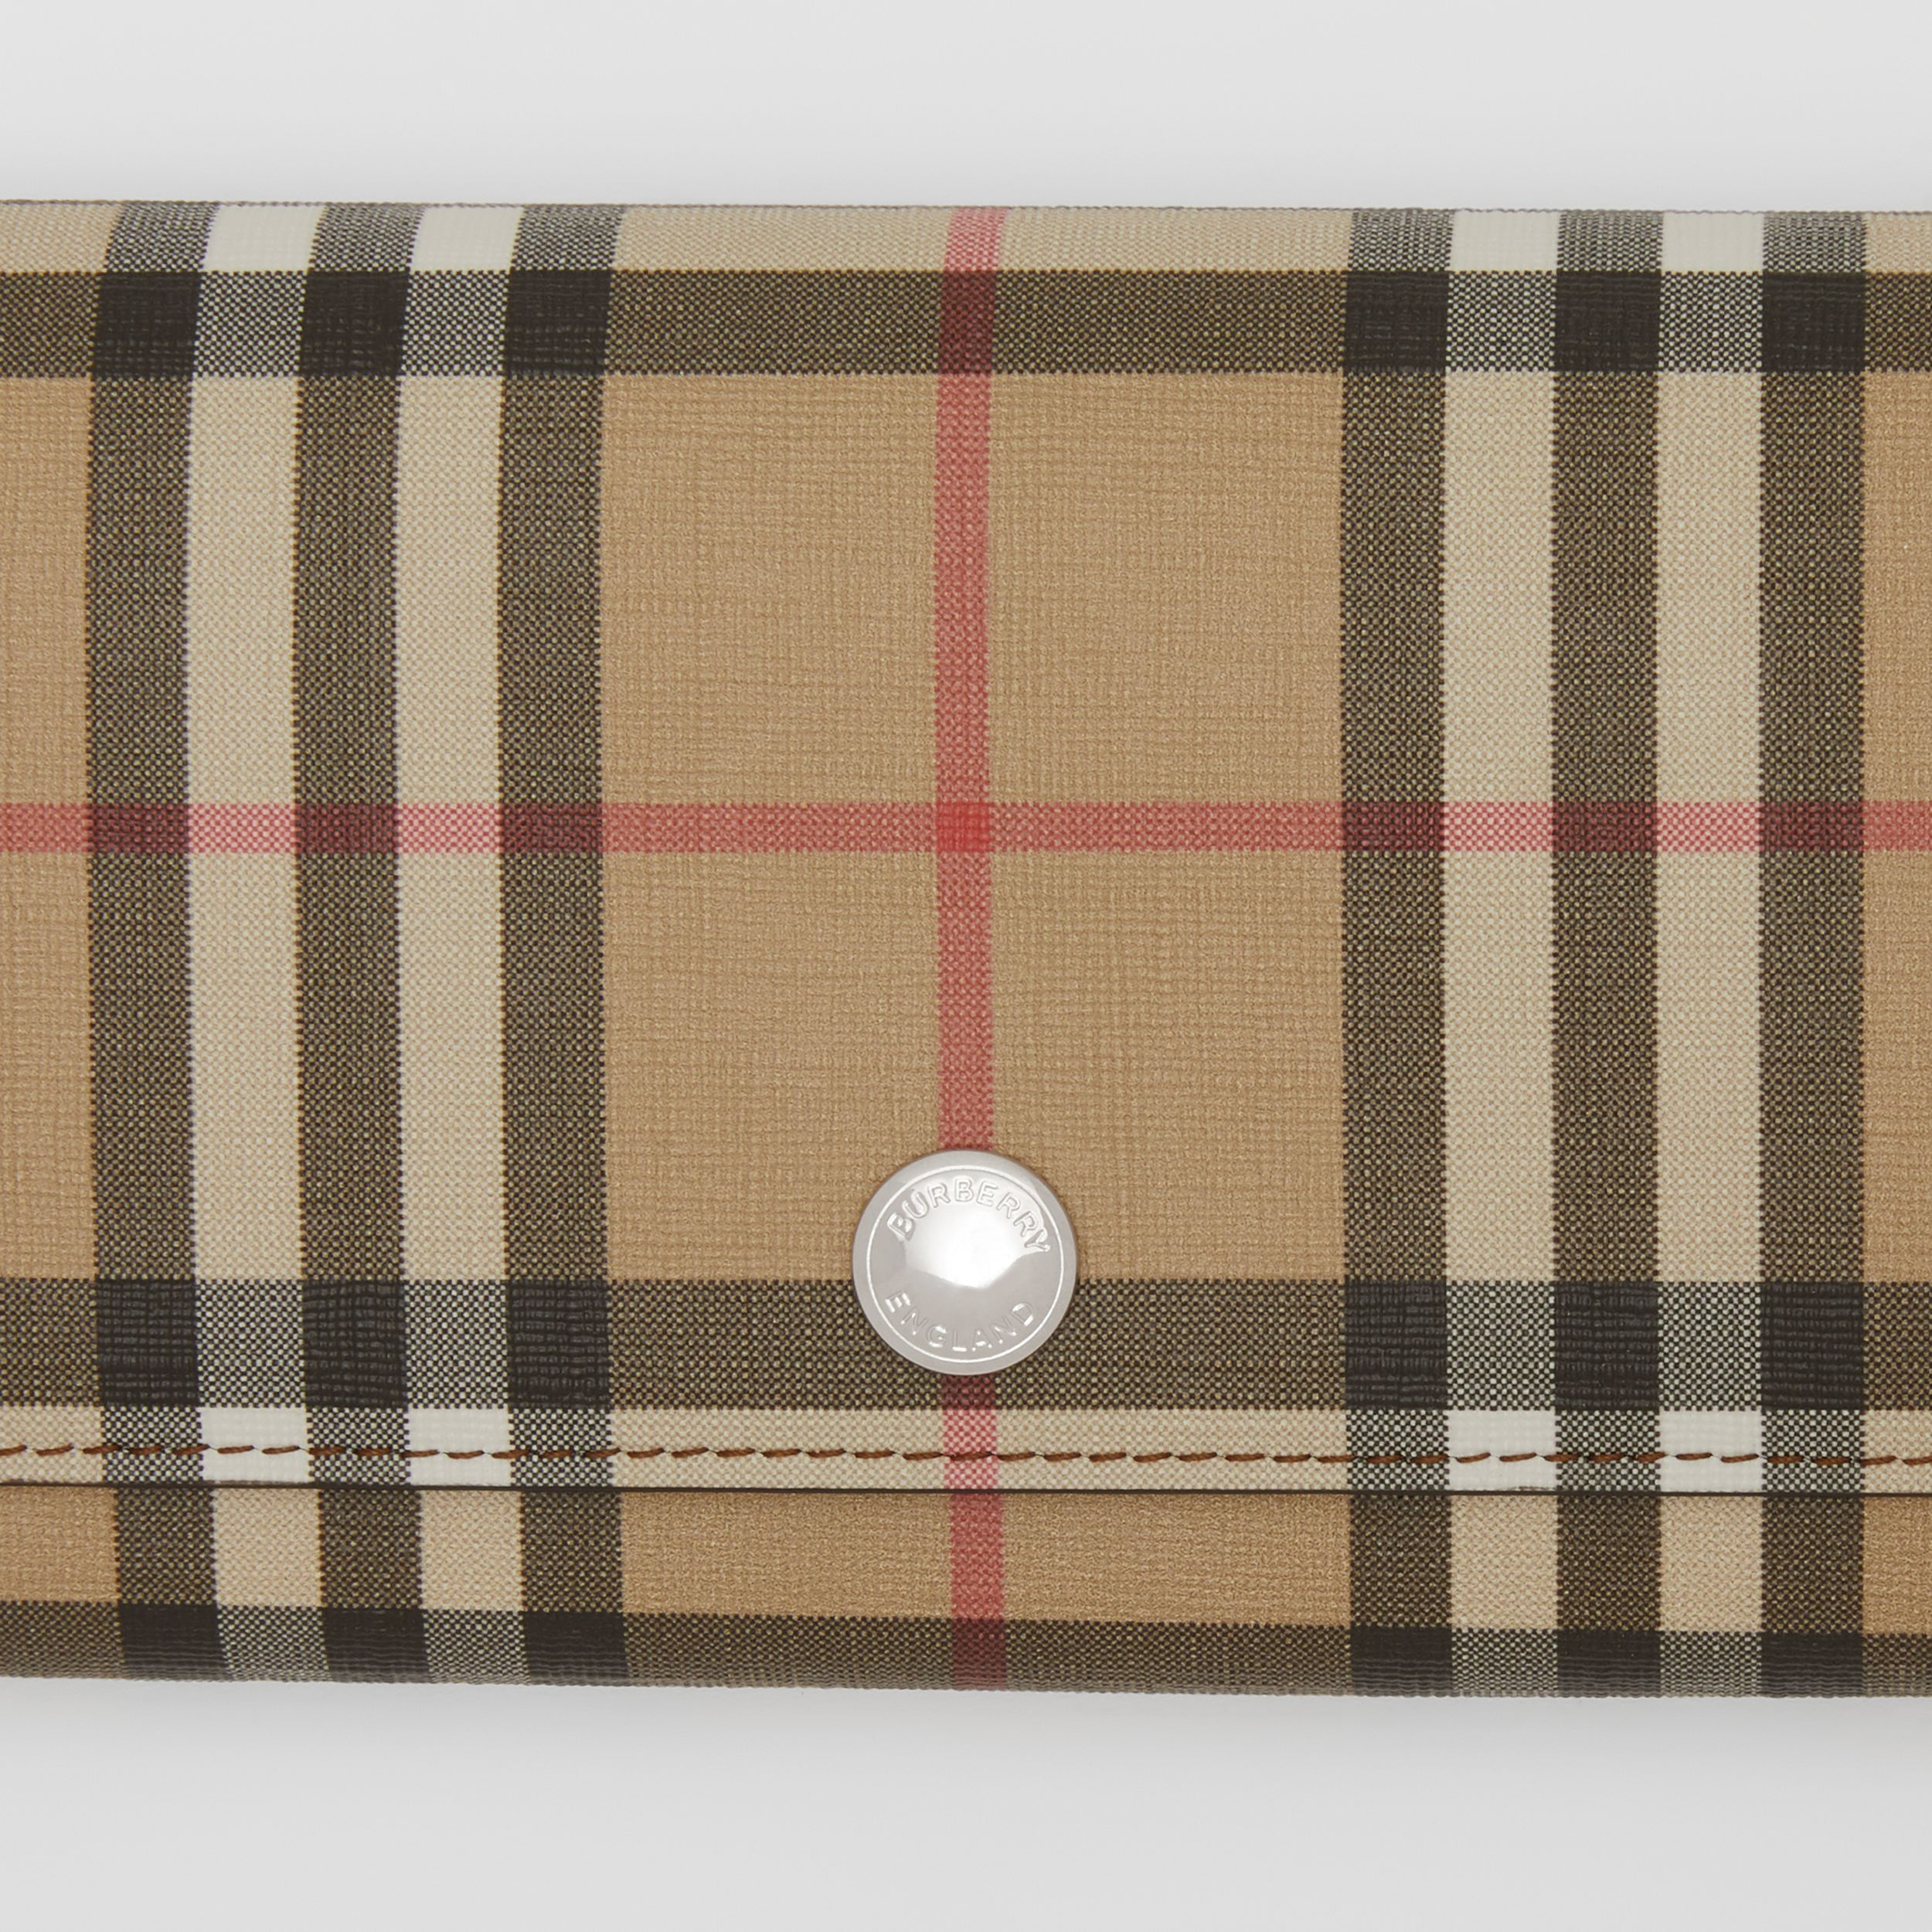 Vintage Check E-canvas Continental Wallet in Malt Brown - Women | Burberry United Kingdom - 2